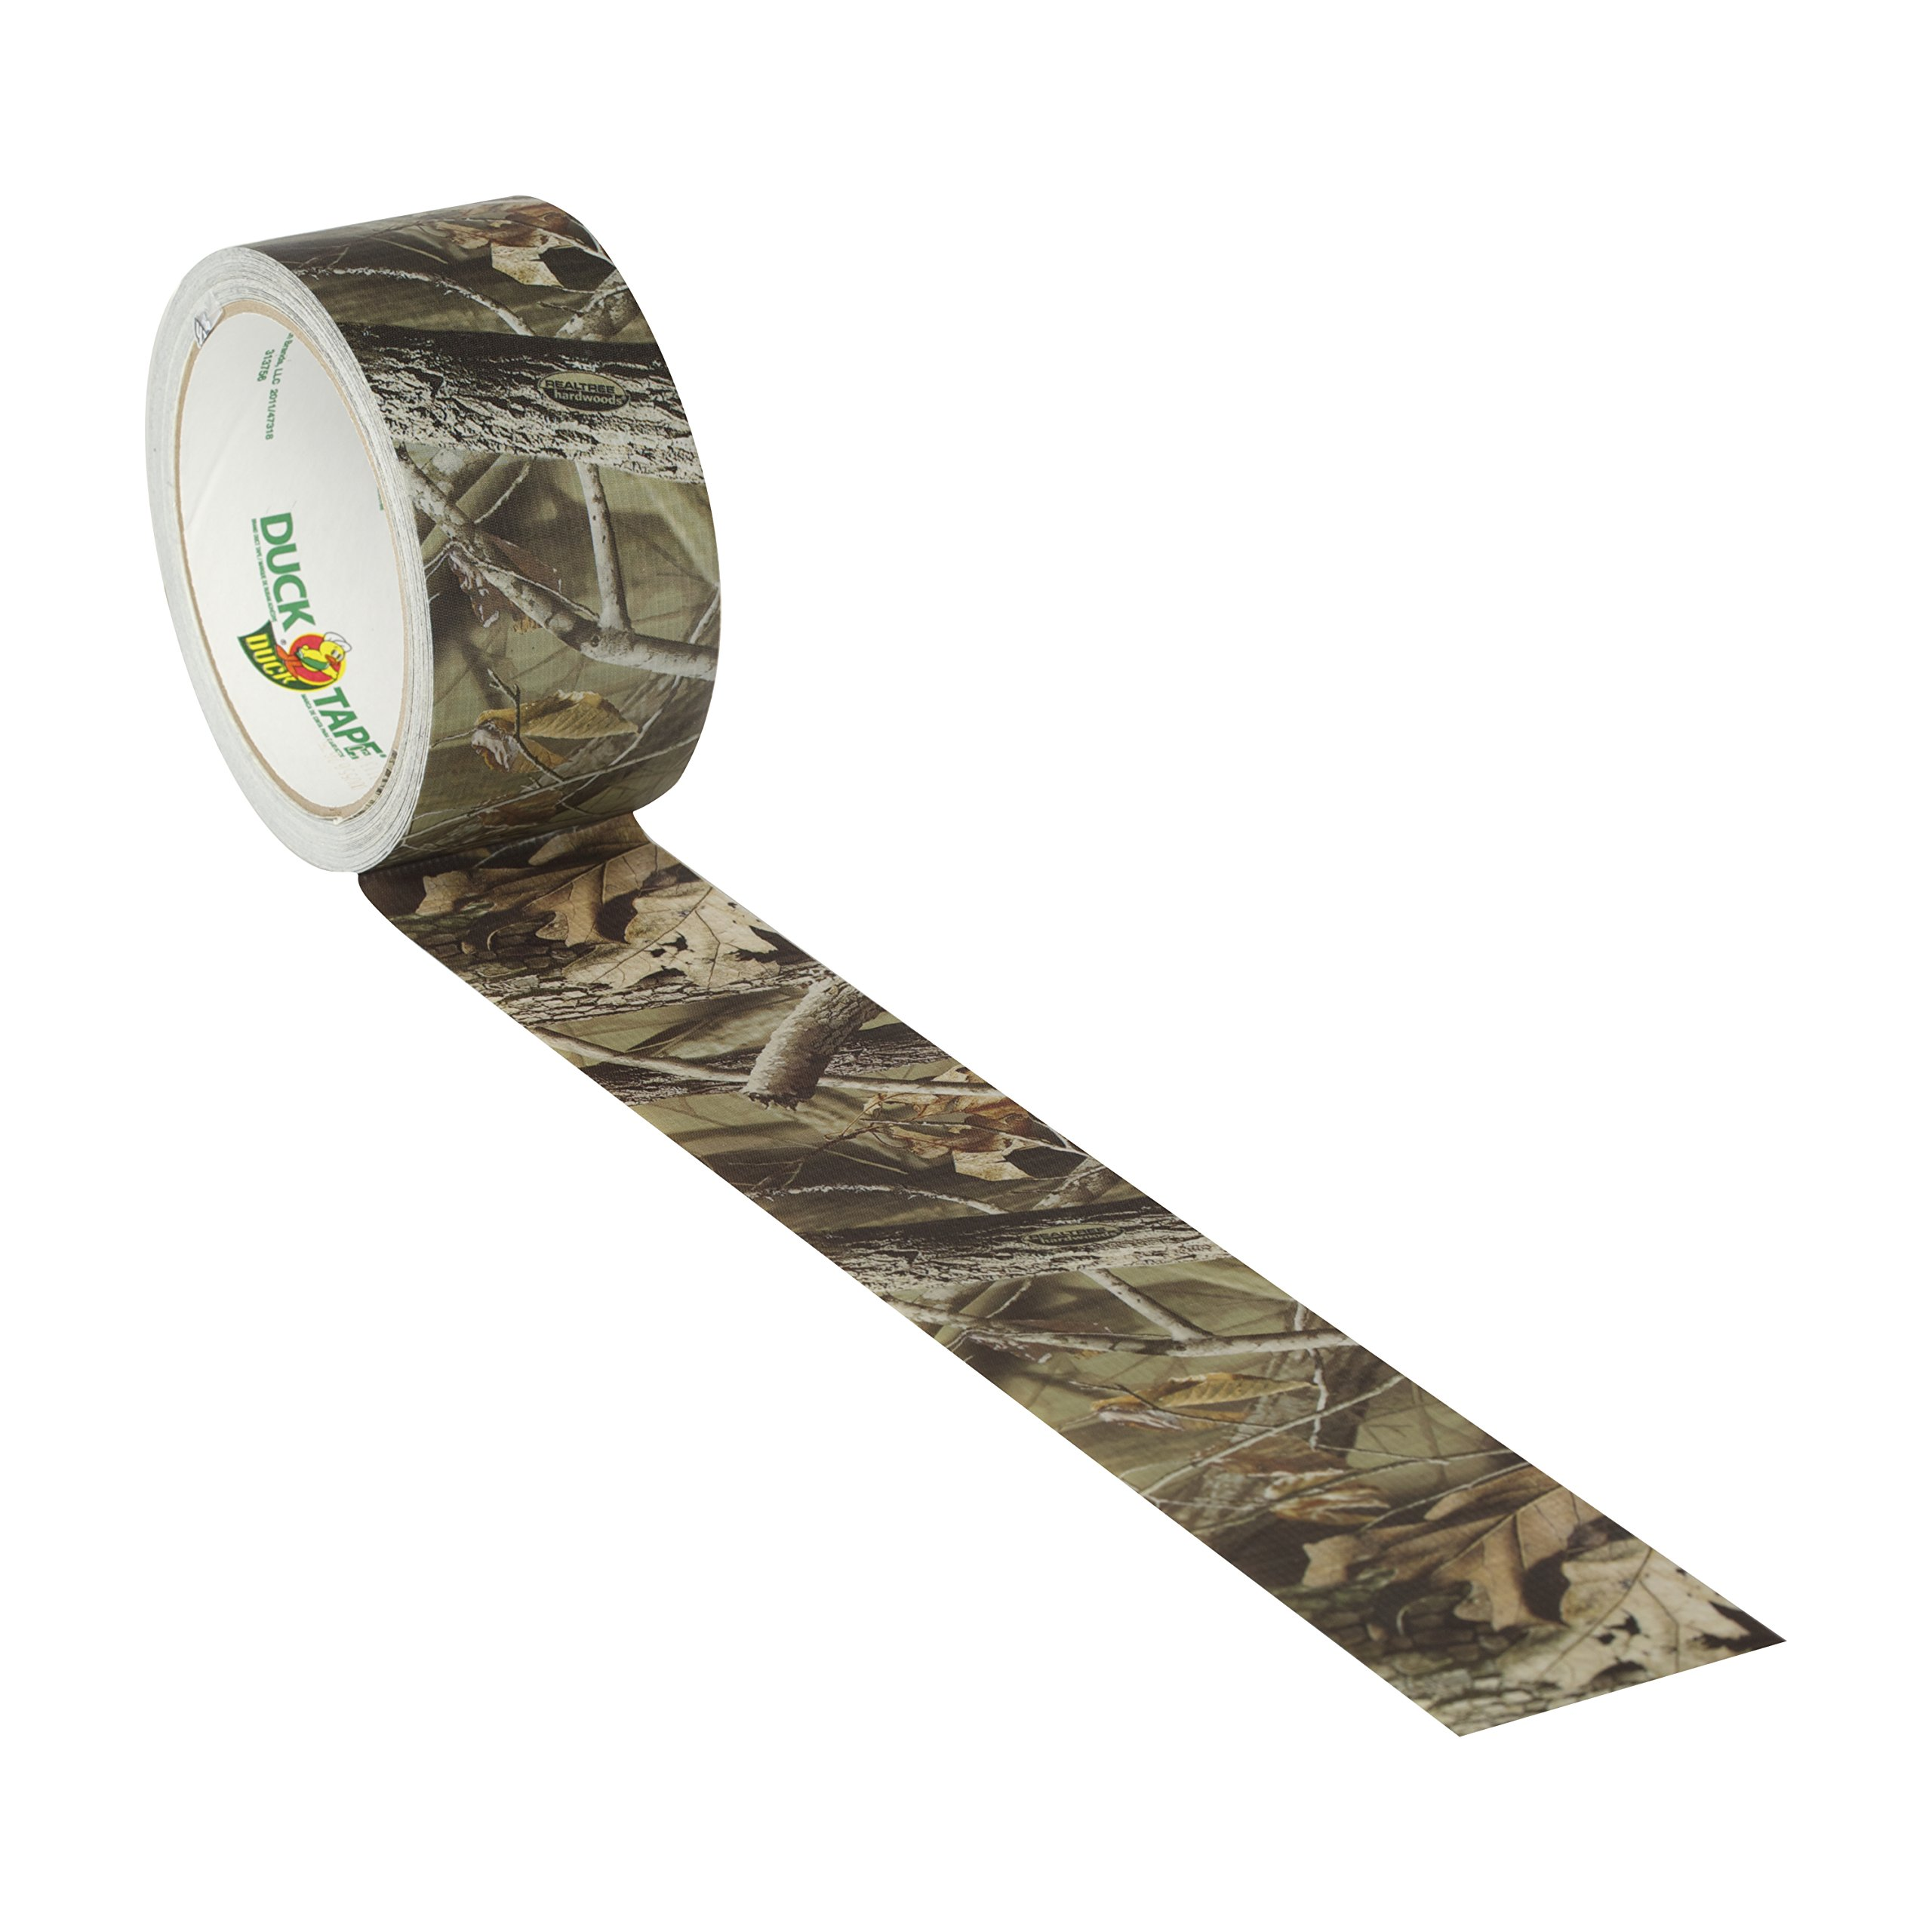 Realtree Camouflage Duck Brand 1409574 Printed Duct Tape 1.88 Inches x 10 Yard